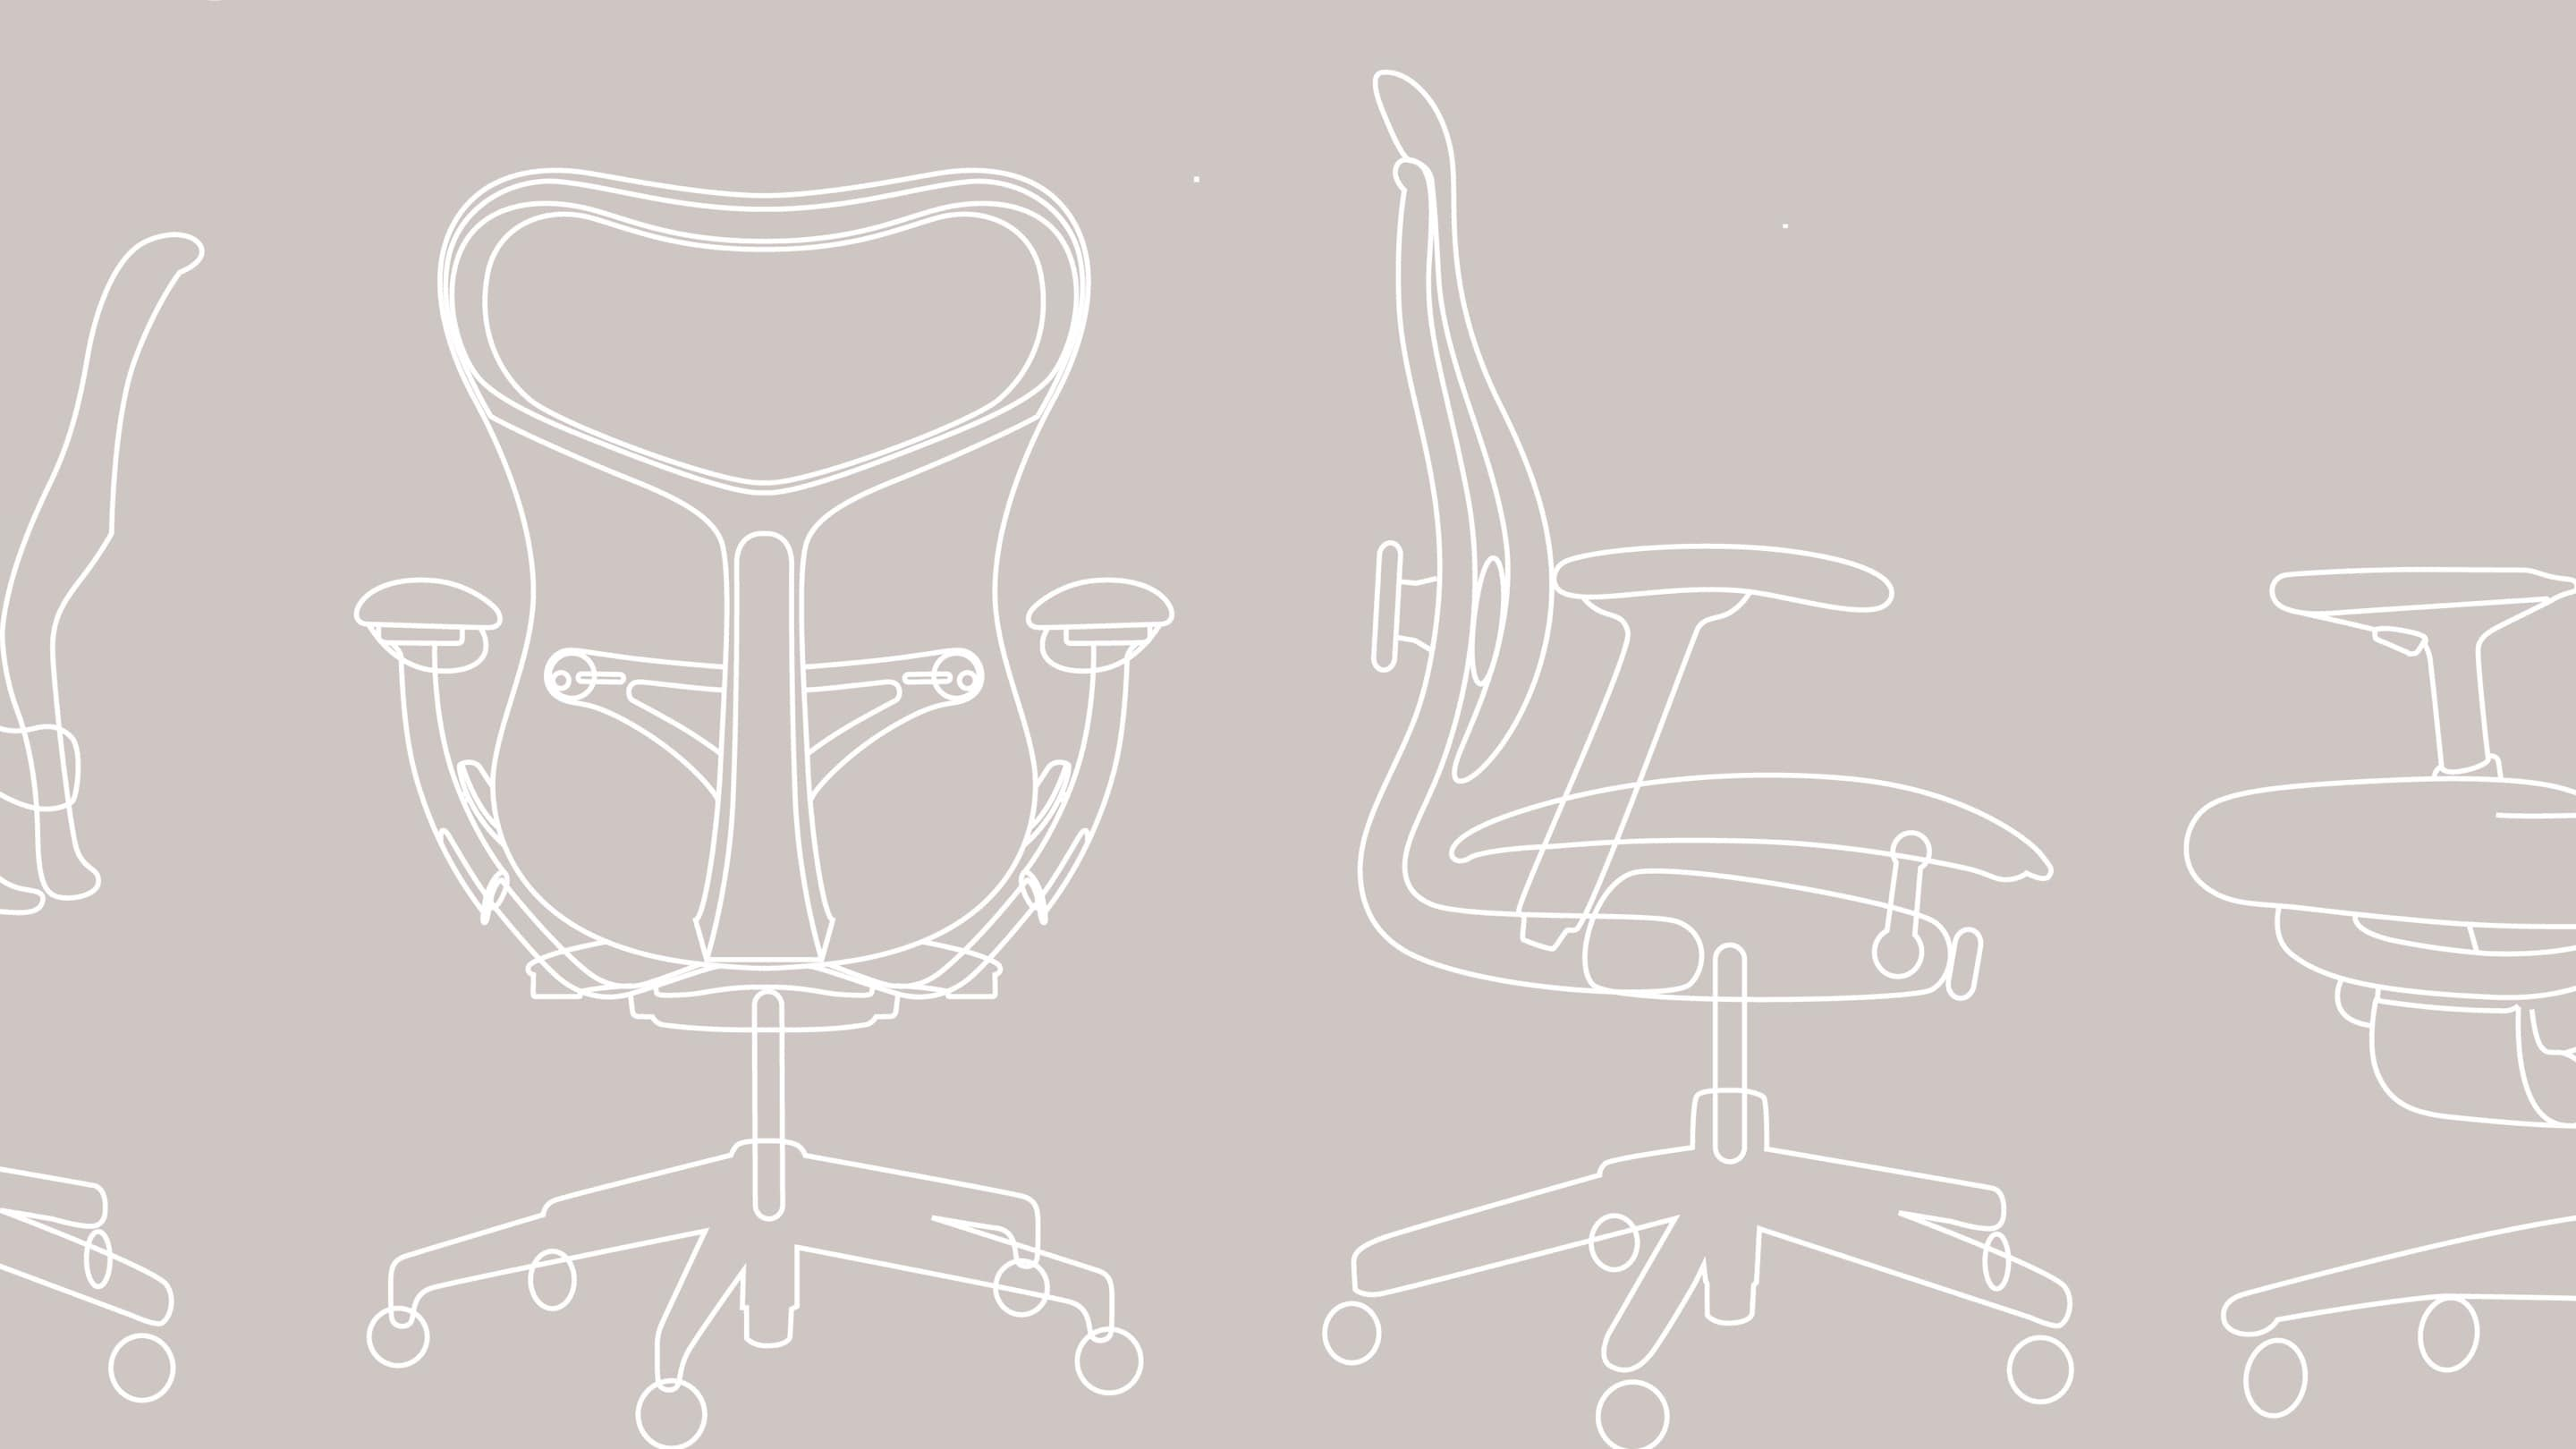 A graphic rendering of an Aeron chair from various angles.